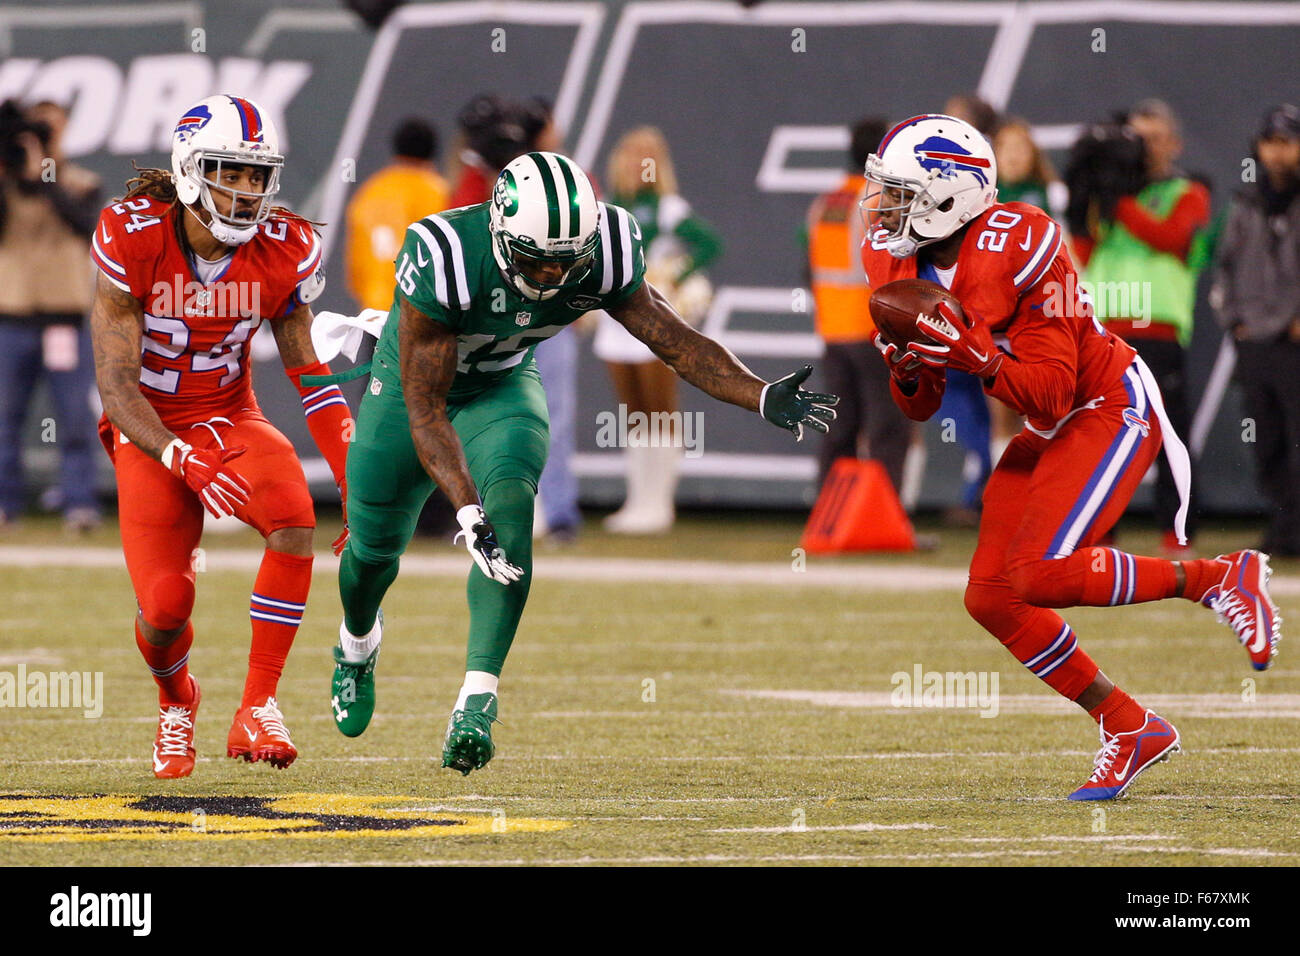 East Rutherford, New Jersey, USA. 12th Nov, 2015. Buffalo Bills free